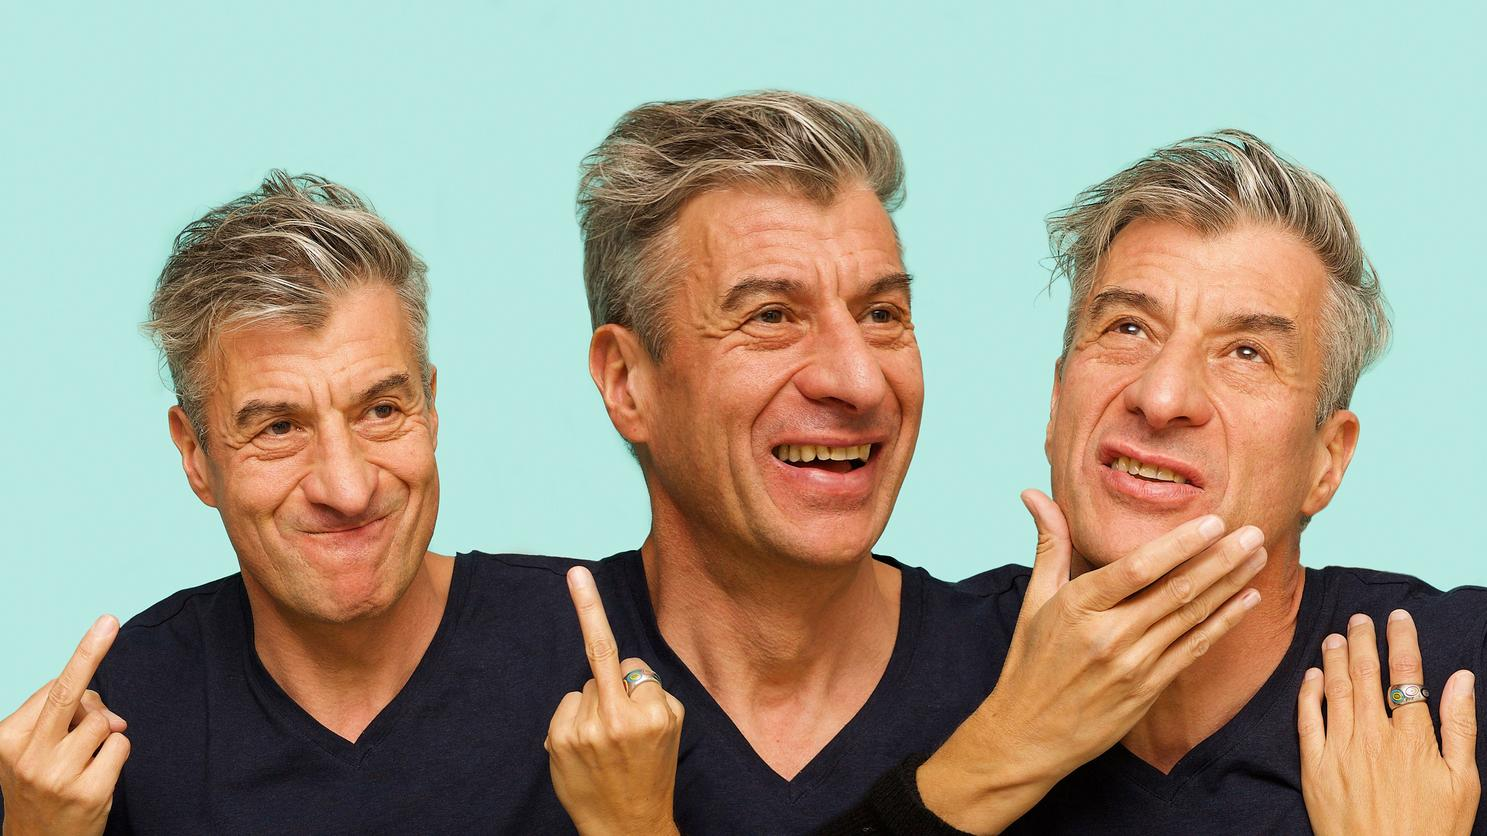 Maurizio Cattelan is one of art's greatest mysteries: https://t.co/Tug3TJpm8H https://t.co/7DQFyzh0lc